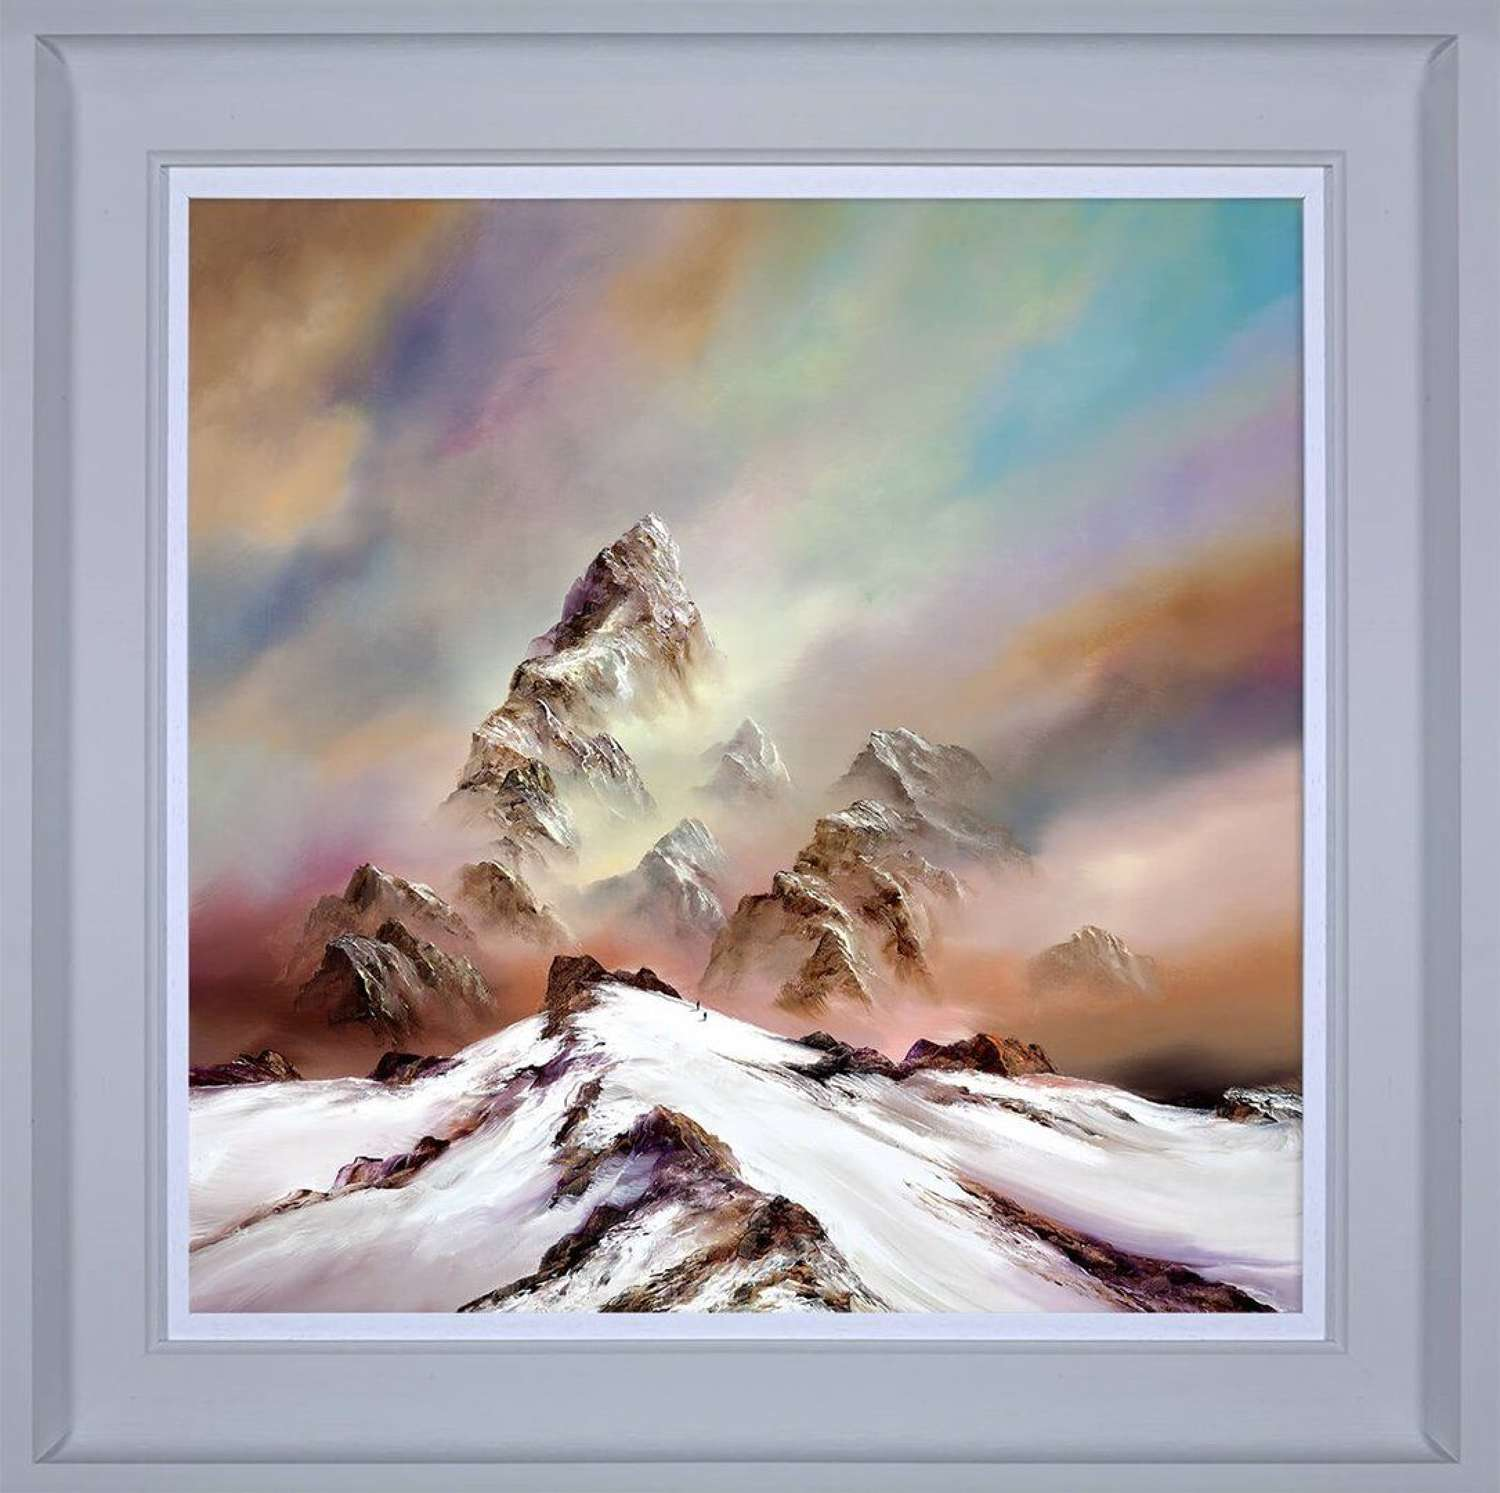 Reach for the Skies - Framed Canvas Art Print by Philip Gray